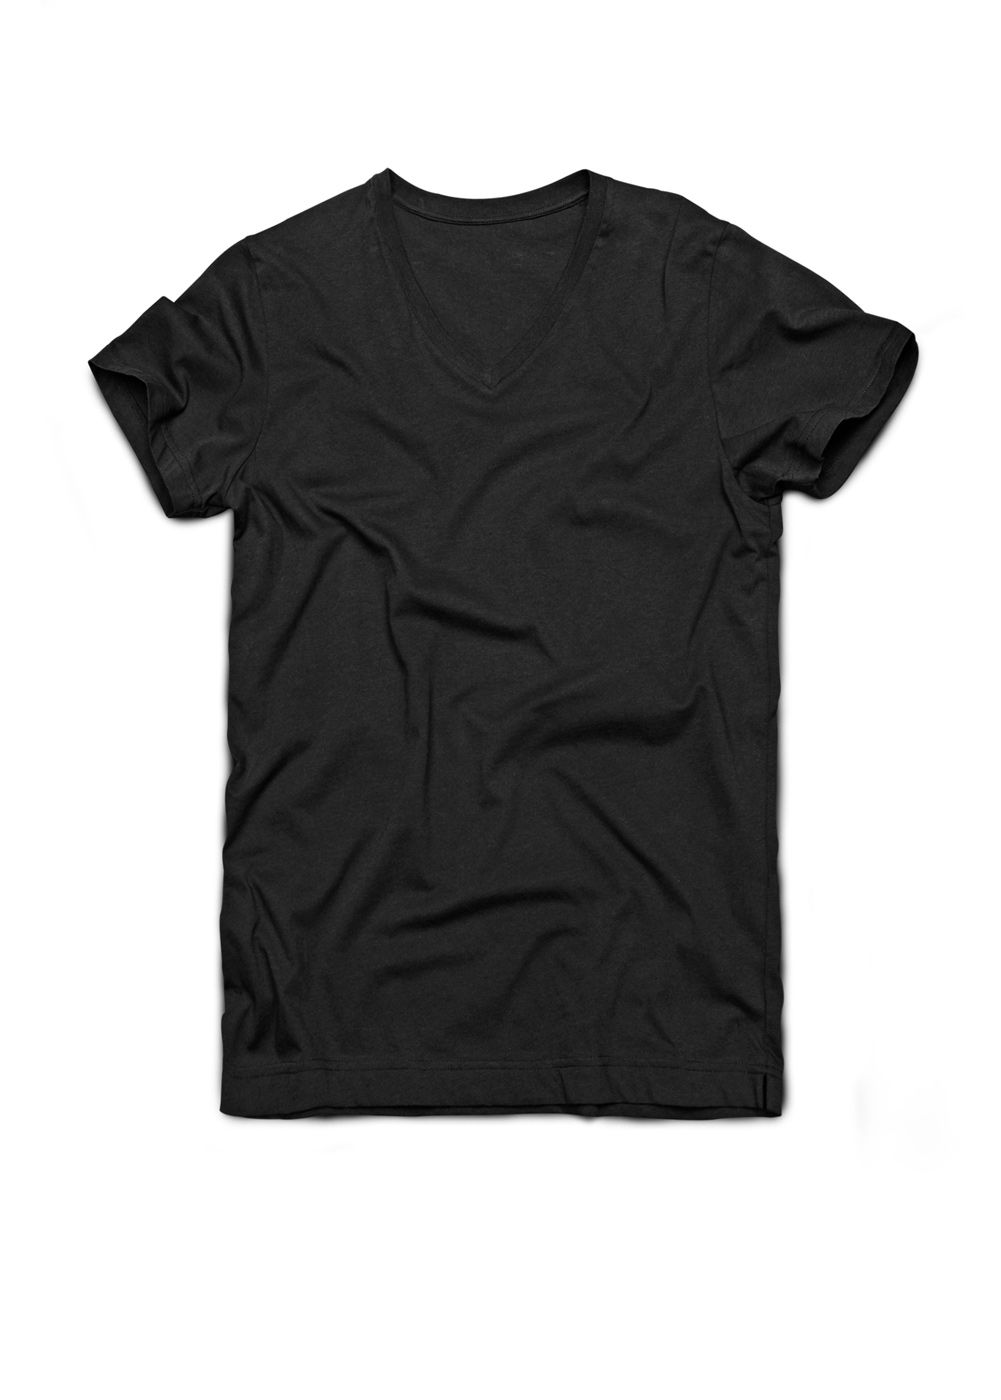 Mango Mens Mango V-neck T-shirt, Black 158402045 product image